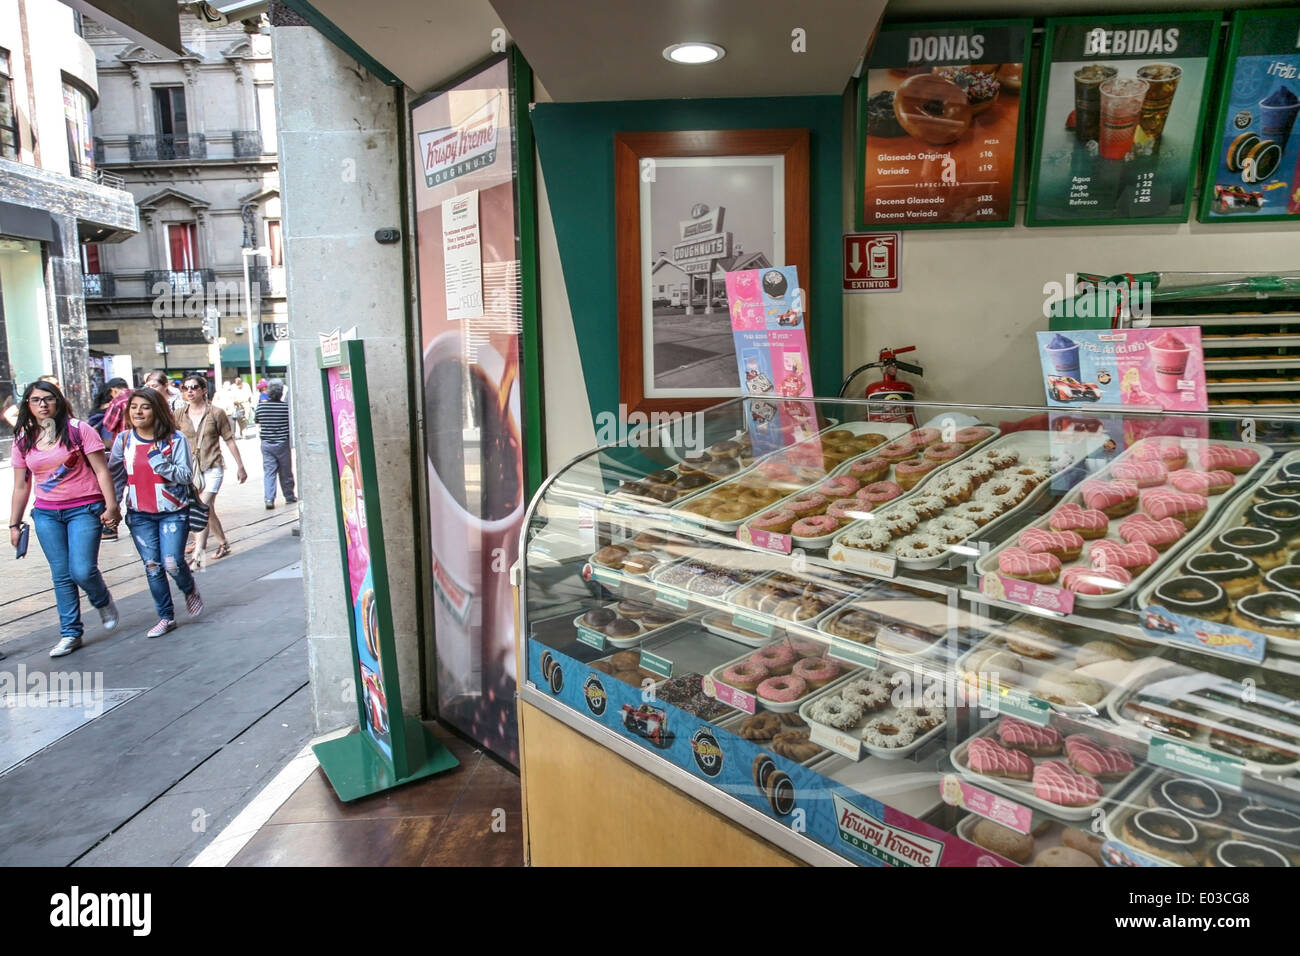 Krispy Kreme doughnut display in shop open to pedestrian Calle Madero to lure passers by walking in Centro Historico Mexico City - Stock Image